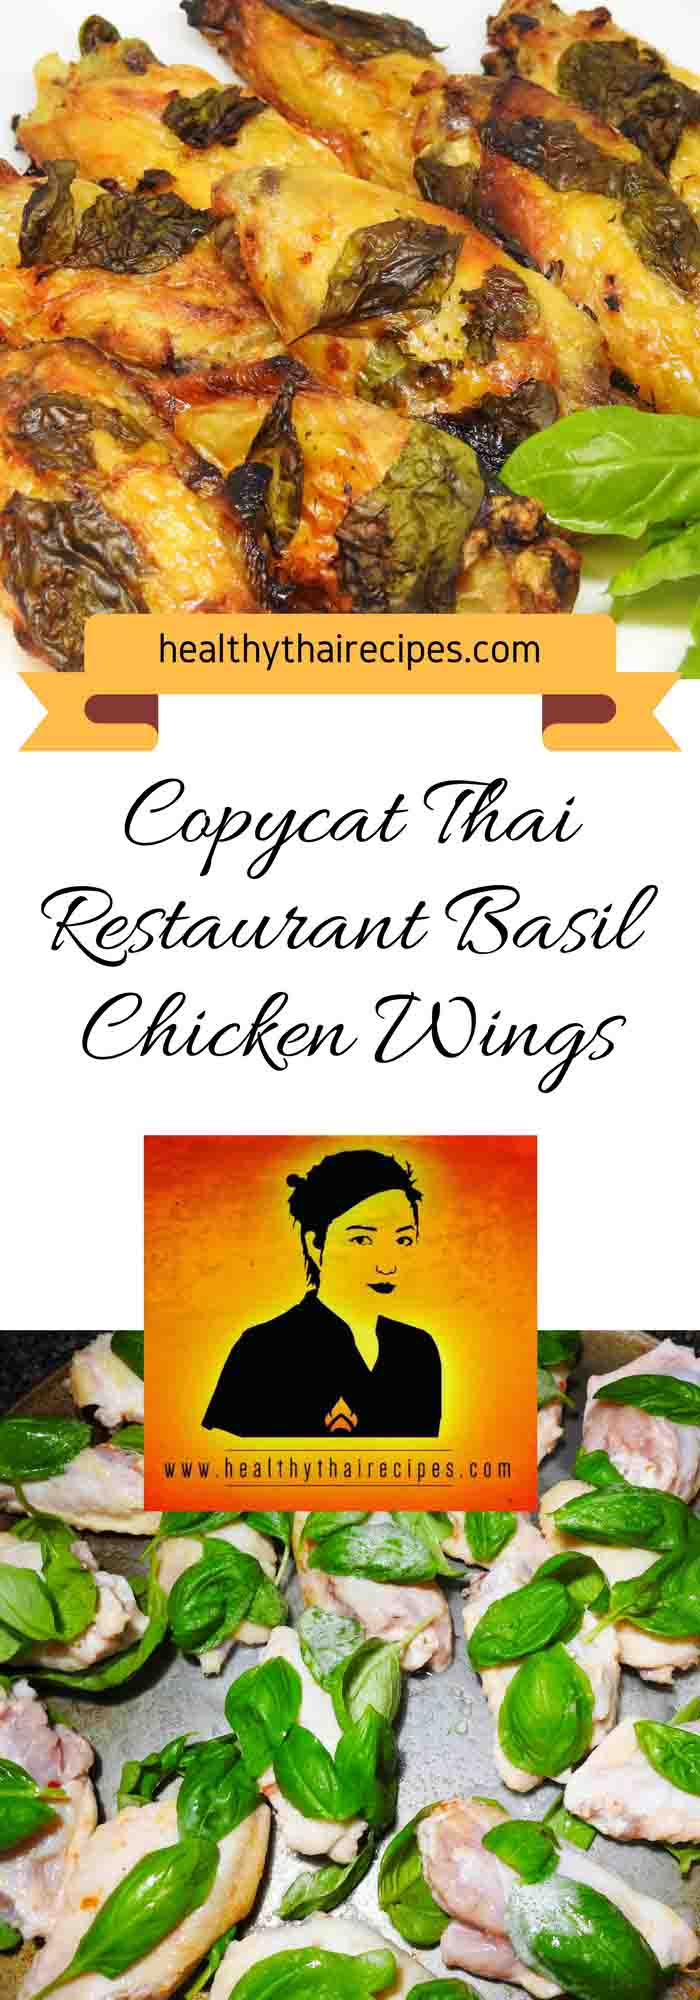 Thai Basil Chicken Wings Pinterest Image